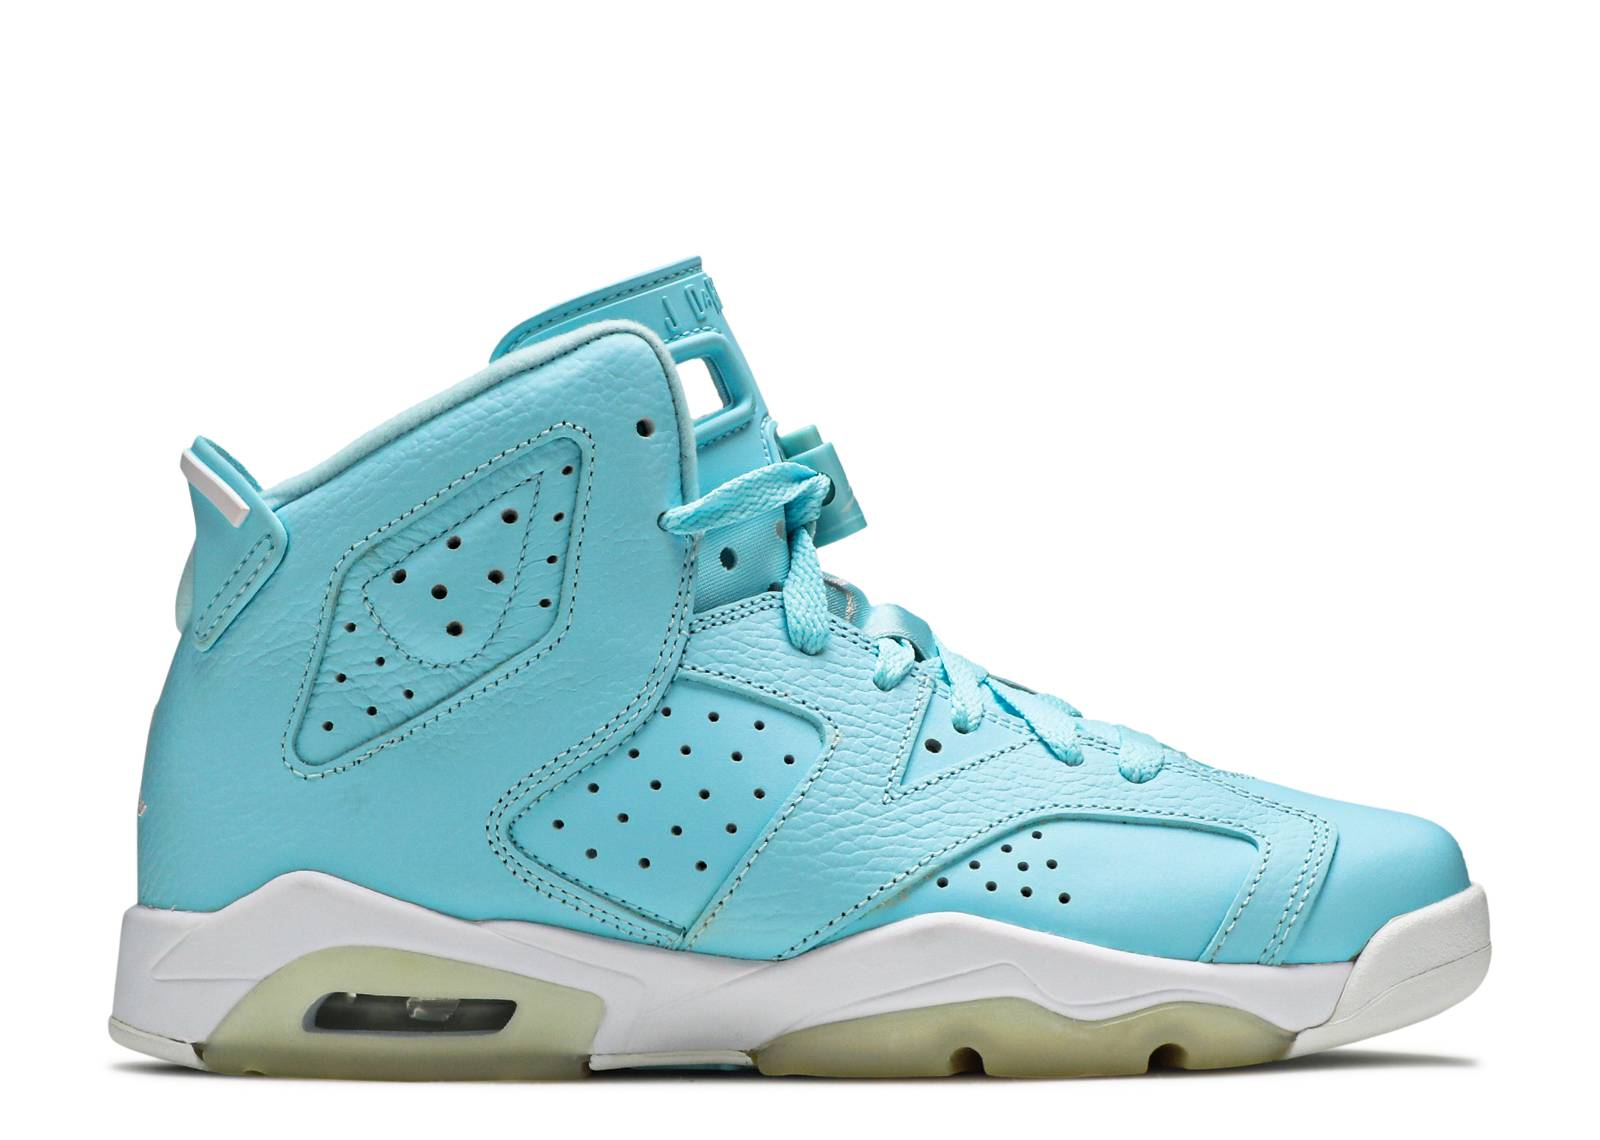 57a97a8748166 Air Jordan 6 Retro Gg (gs) - Air Jordan - 543390 407 - still blue ...